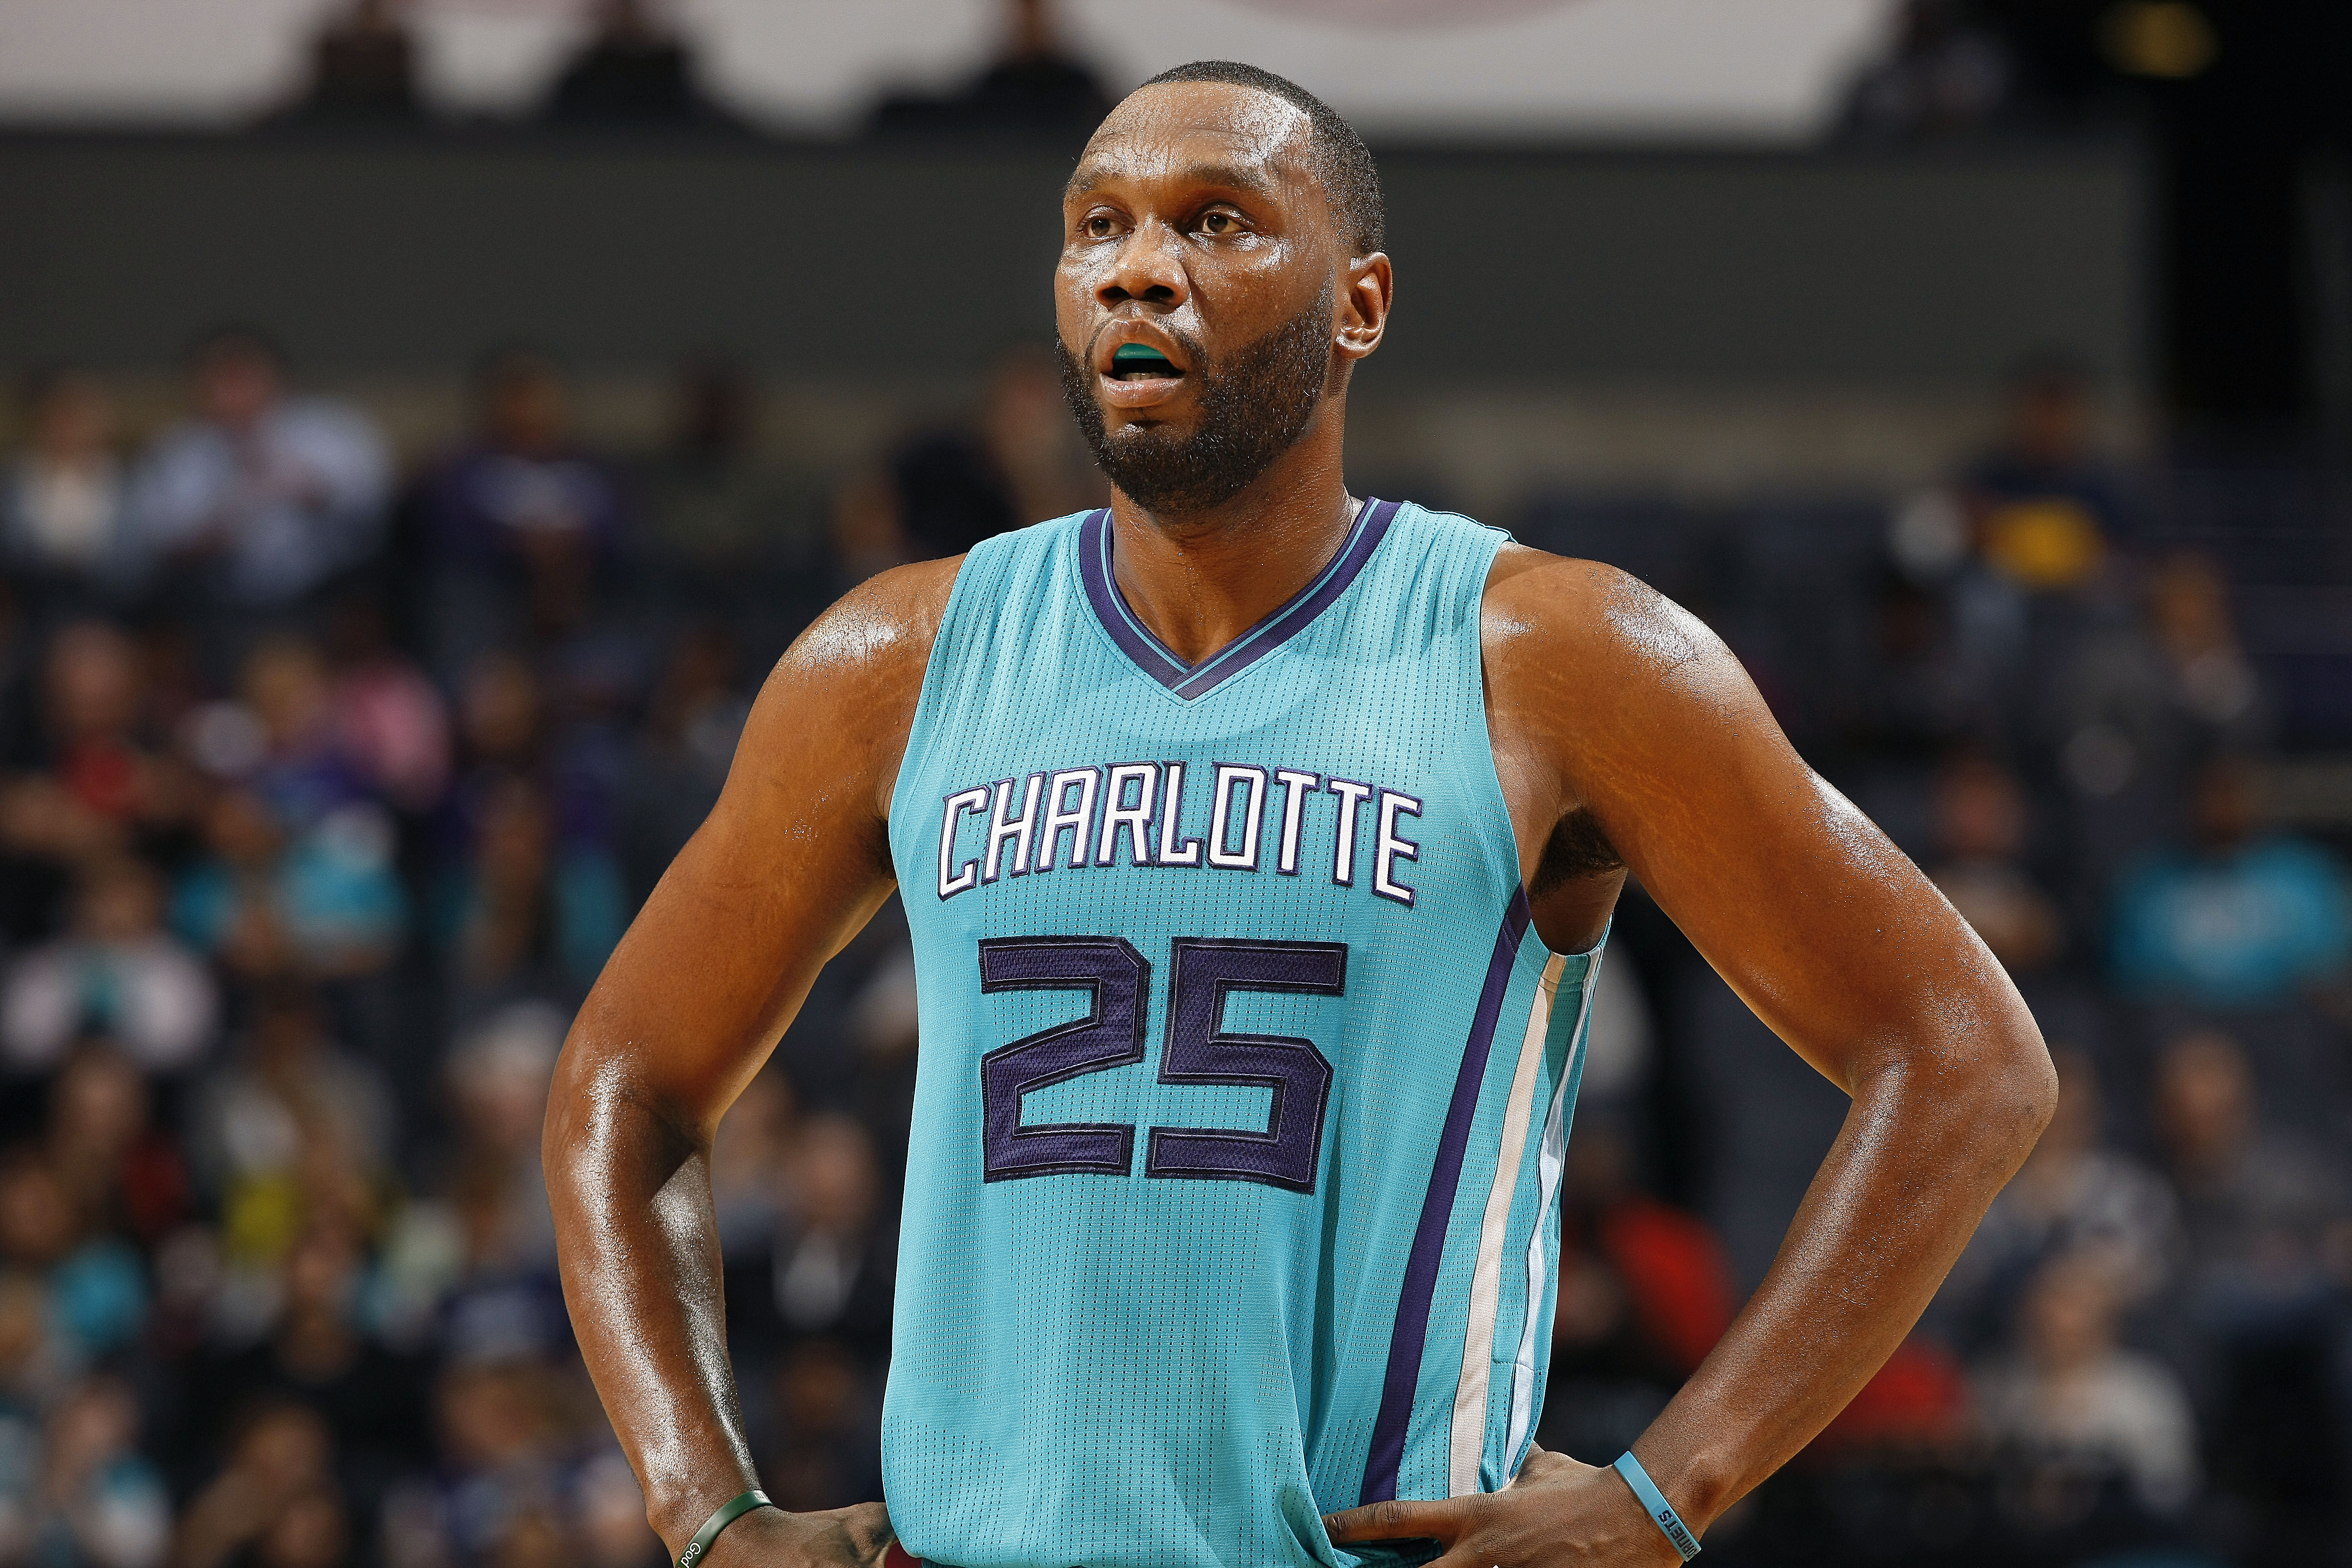 CHARLOTTE, NC - NOVEMBER 29: Al Jefferson #25 of the Charlotte Hornets looks on during the game against the Milwaukee Bucks on November 29, 2015 at Time Warner Cable Arena in Charlotte, North Carolina. (Photo by Kent Smith/NBAE via Getty Images)